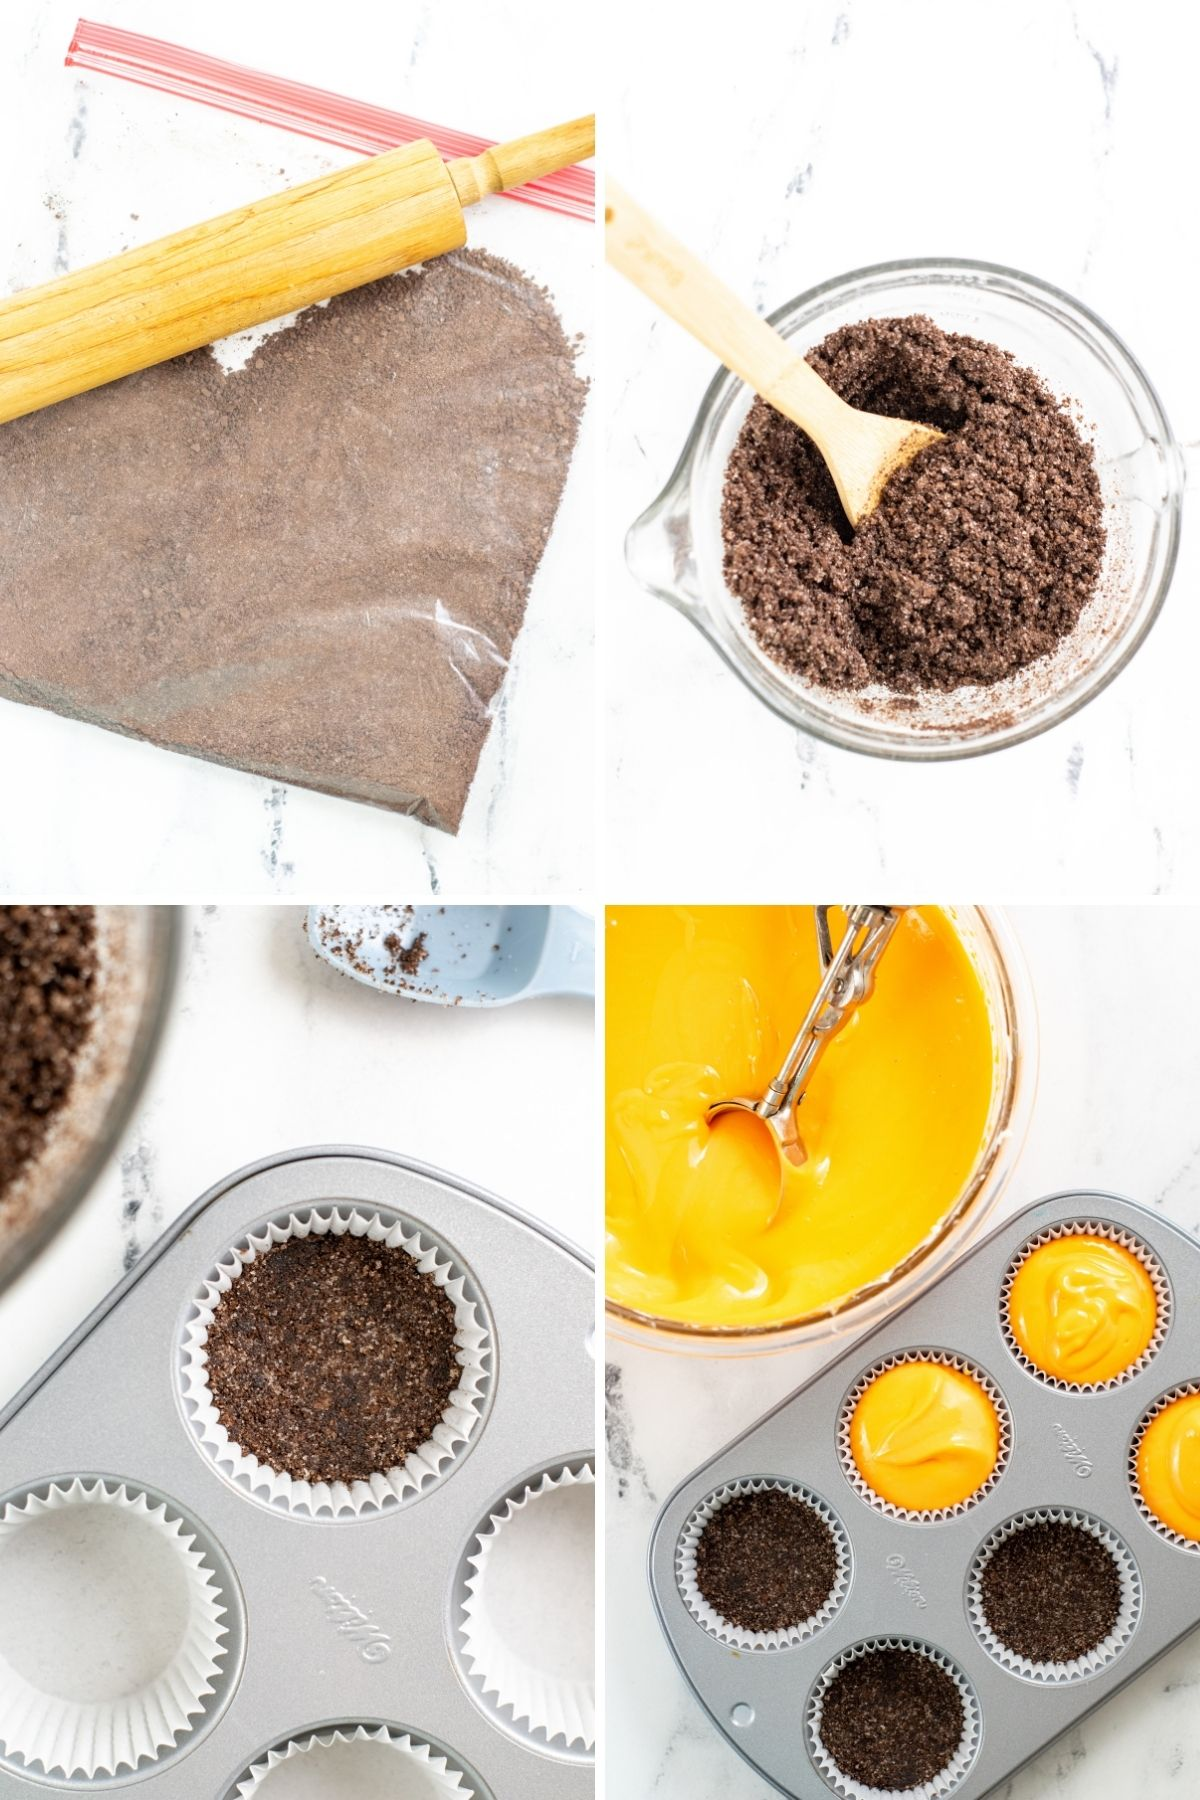 four pictures: gallon zipper baggie with chocolate crumbs and rolling pin; chocolate crumbs and melted butter; chocolate crumbs in the bottom of a cupcake liner; orange cheesecake filling with cookie scoop and placed on top of cookie crumbs